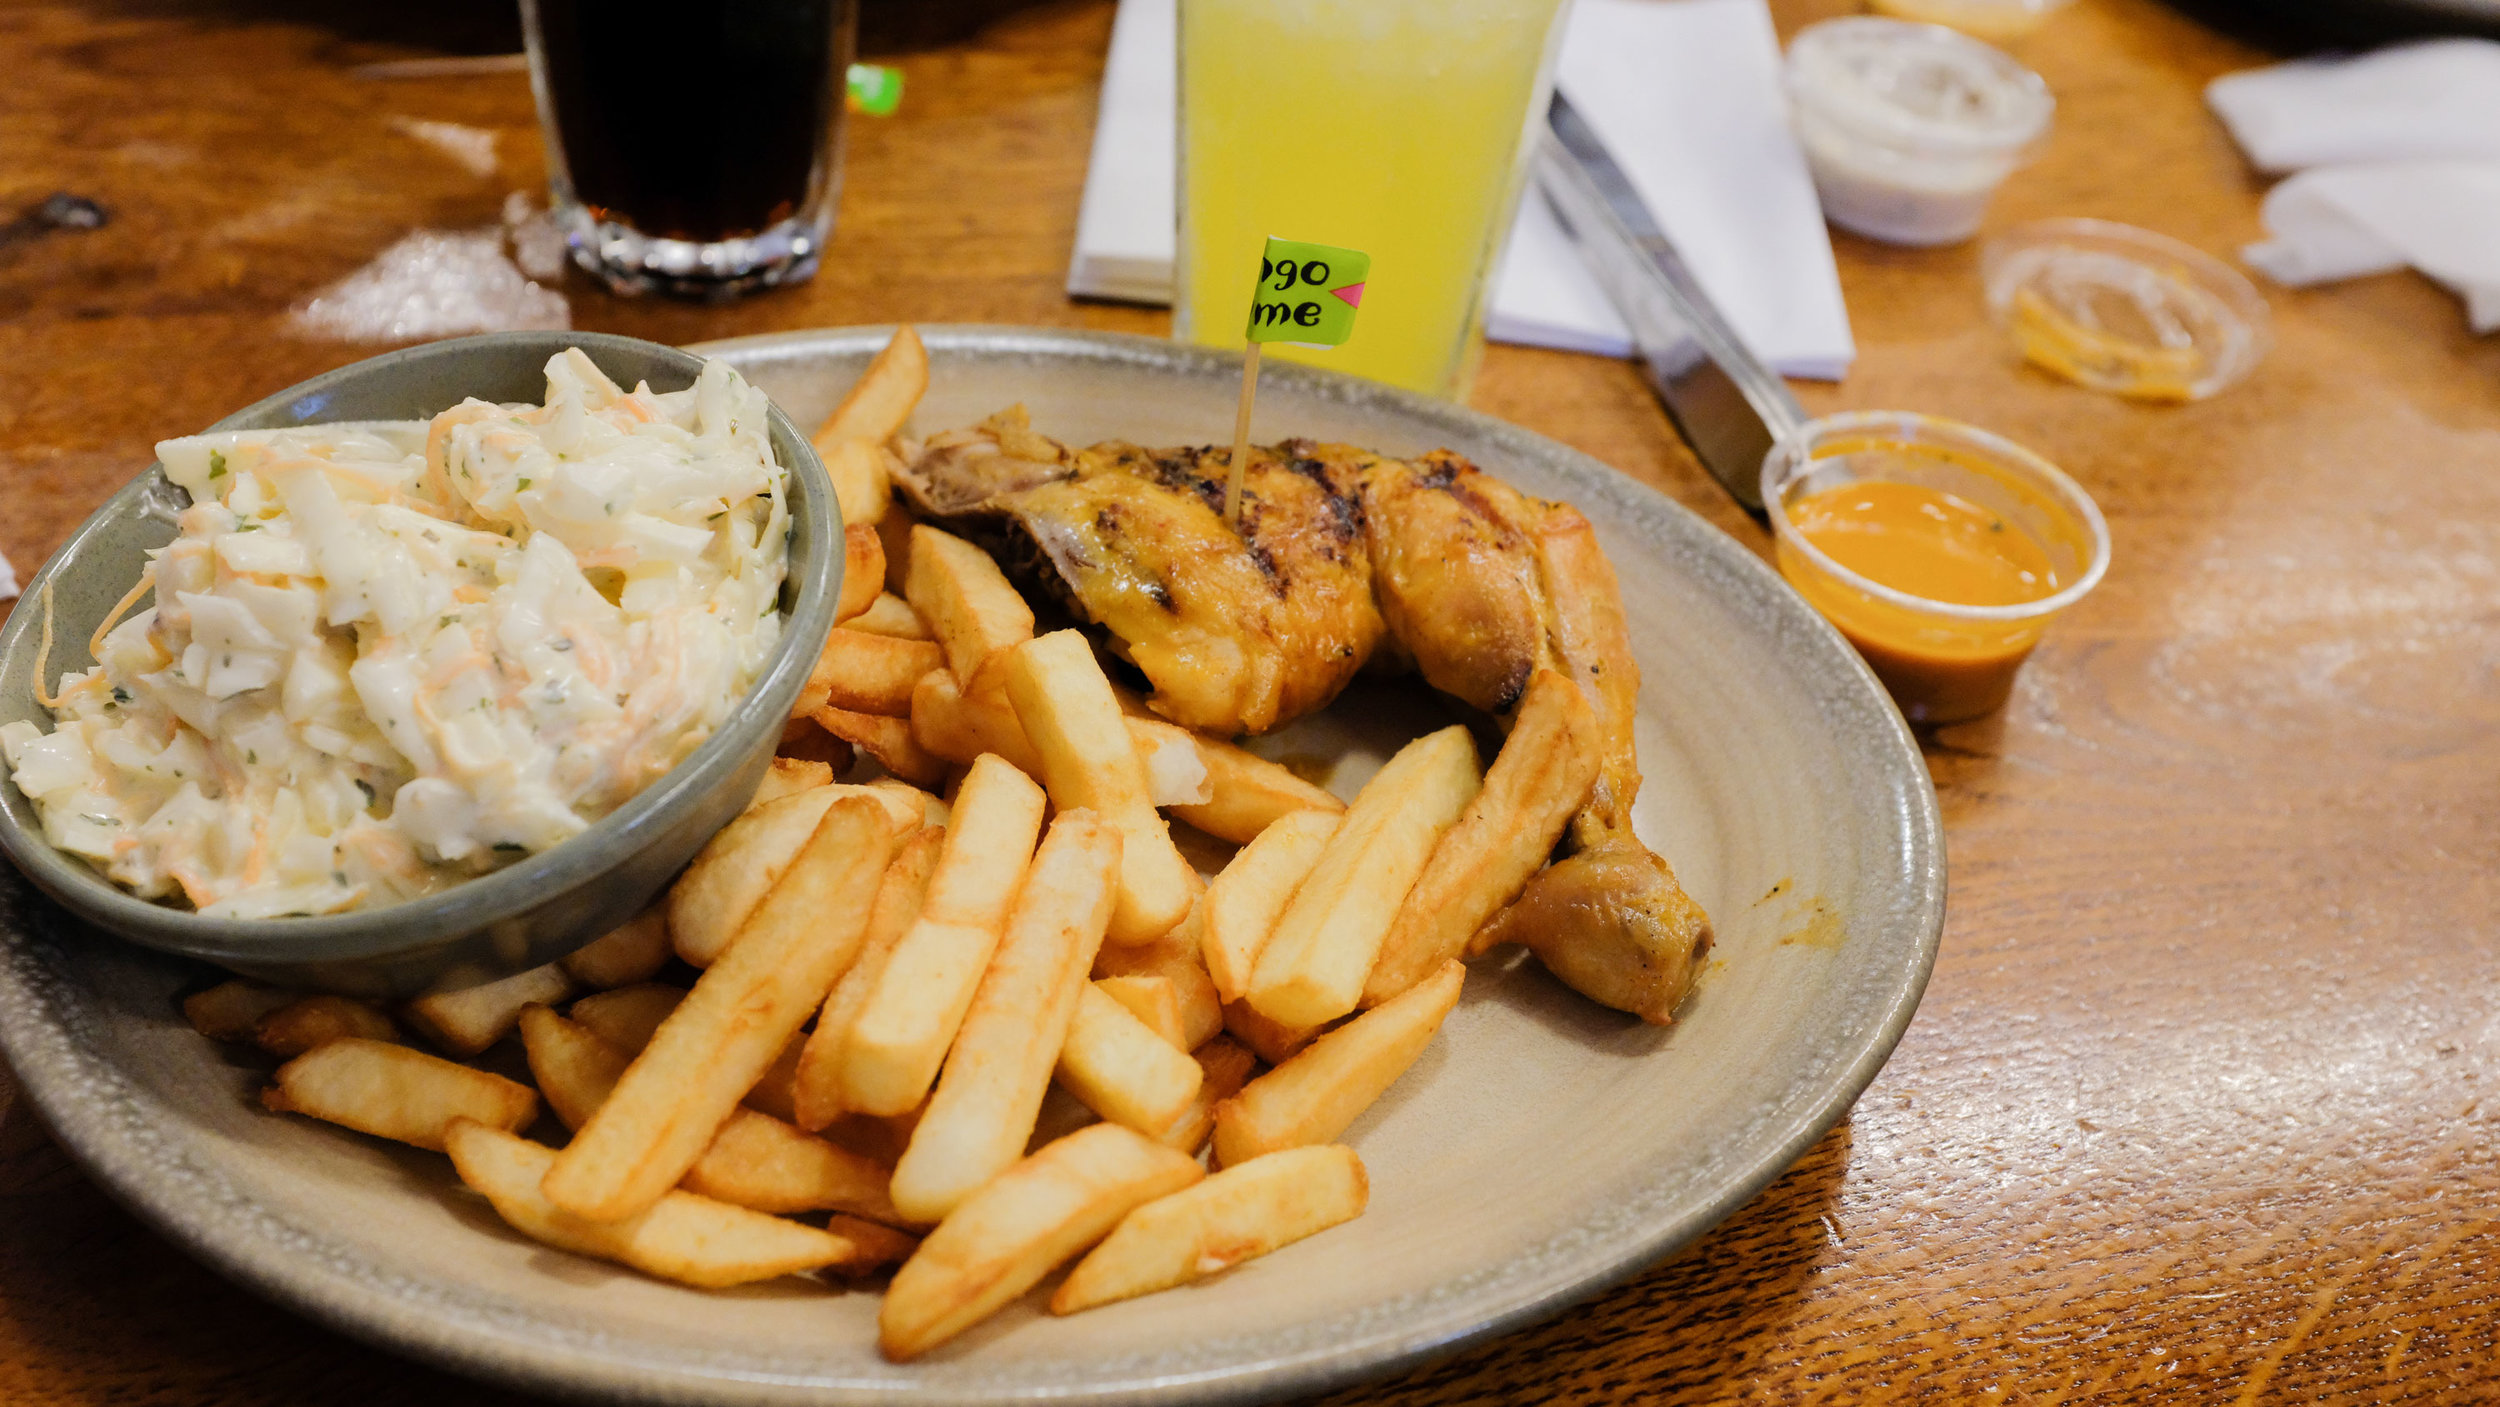 You know I had to try a cheeky Nandos after seeing how popular it is over there. It was good! Not mind blowing or anything since it's a chain. The orange Fanta in the UK is so light! I'm not a huge soda drinker but when its light, I don't mind.